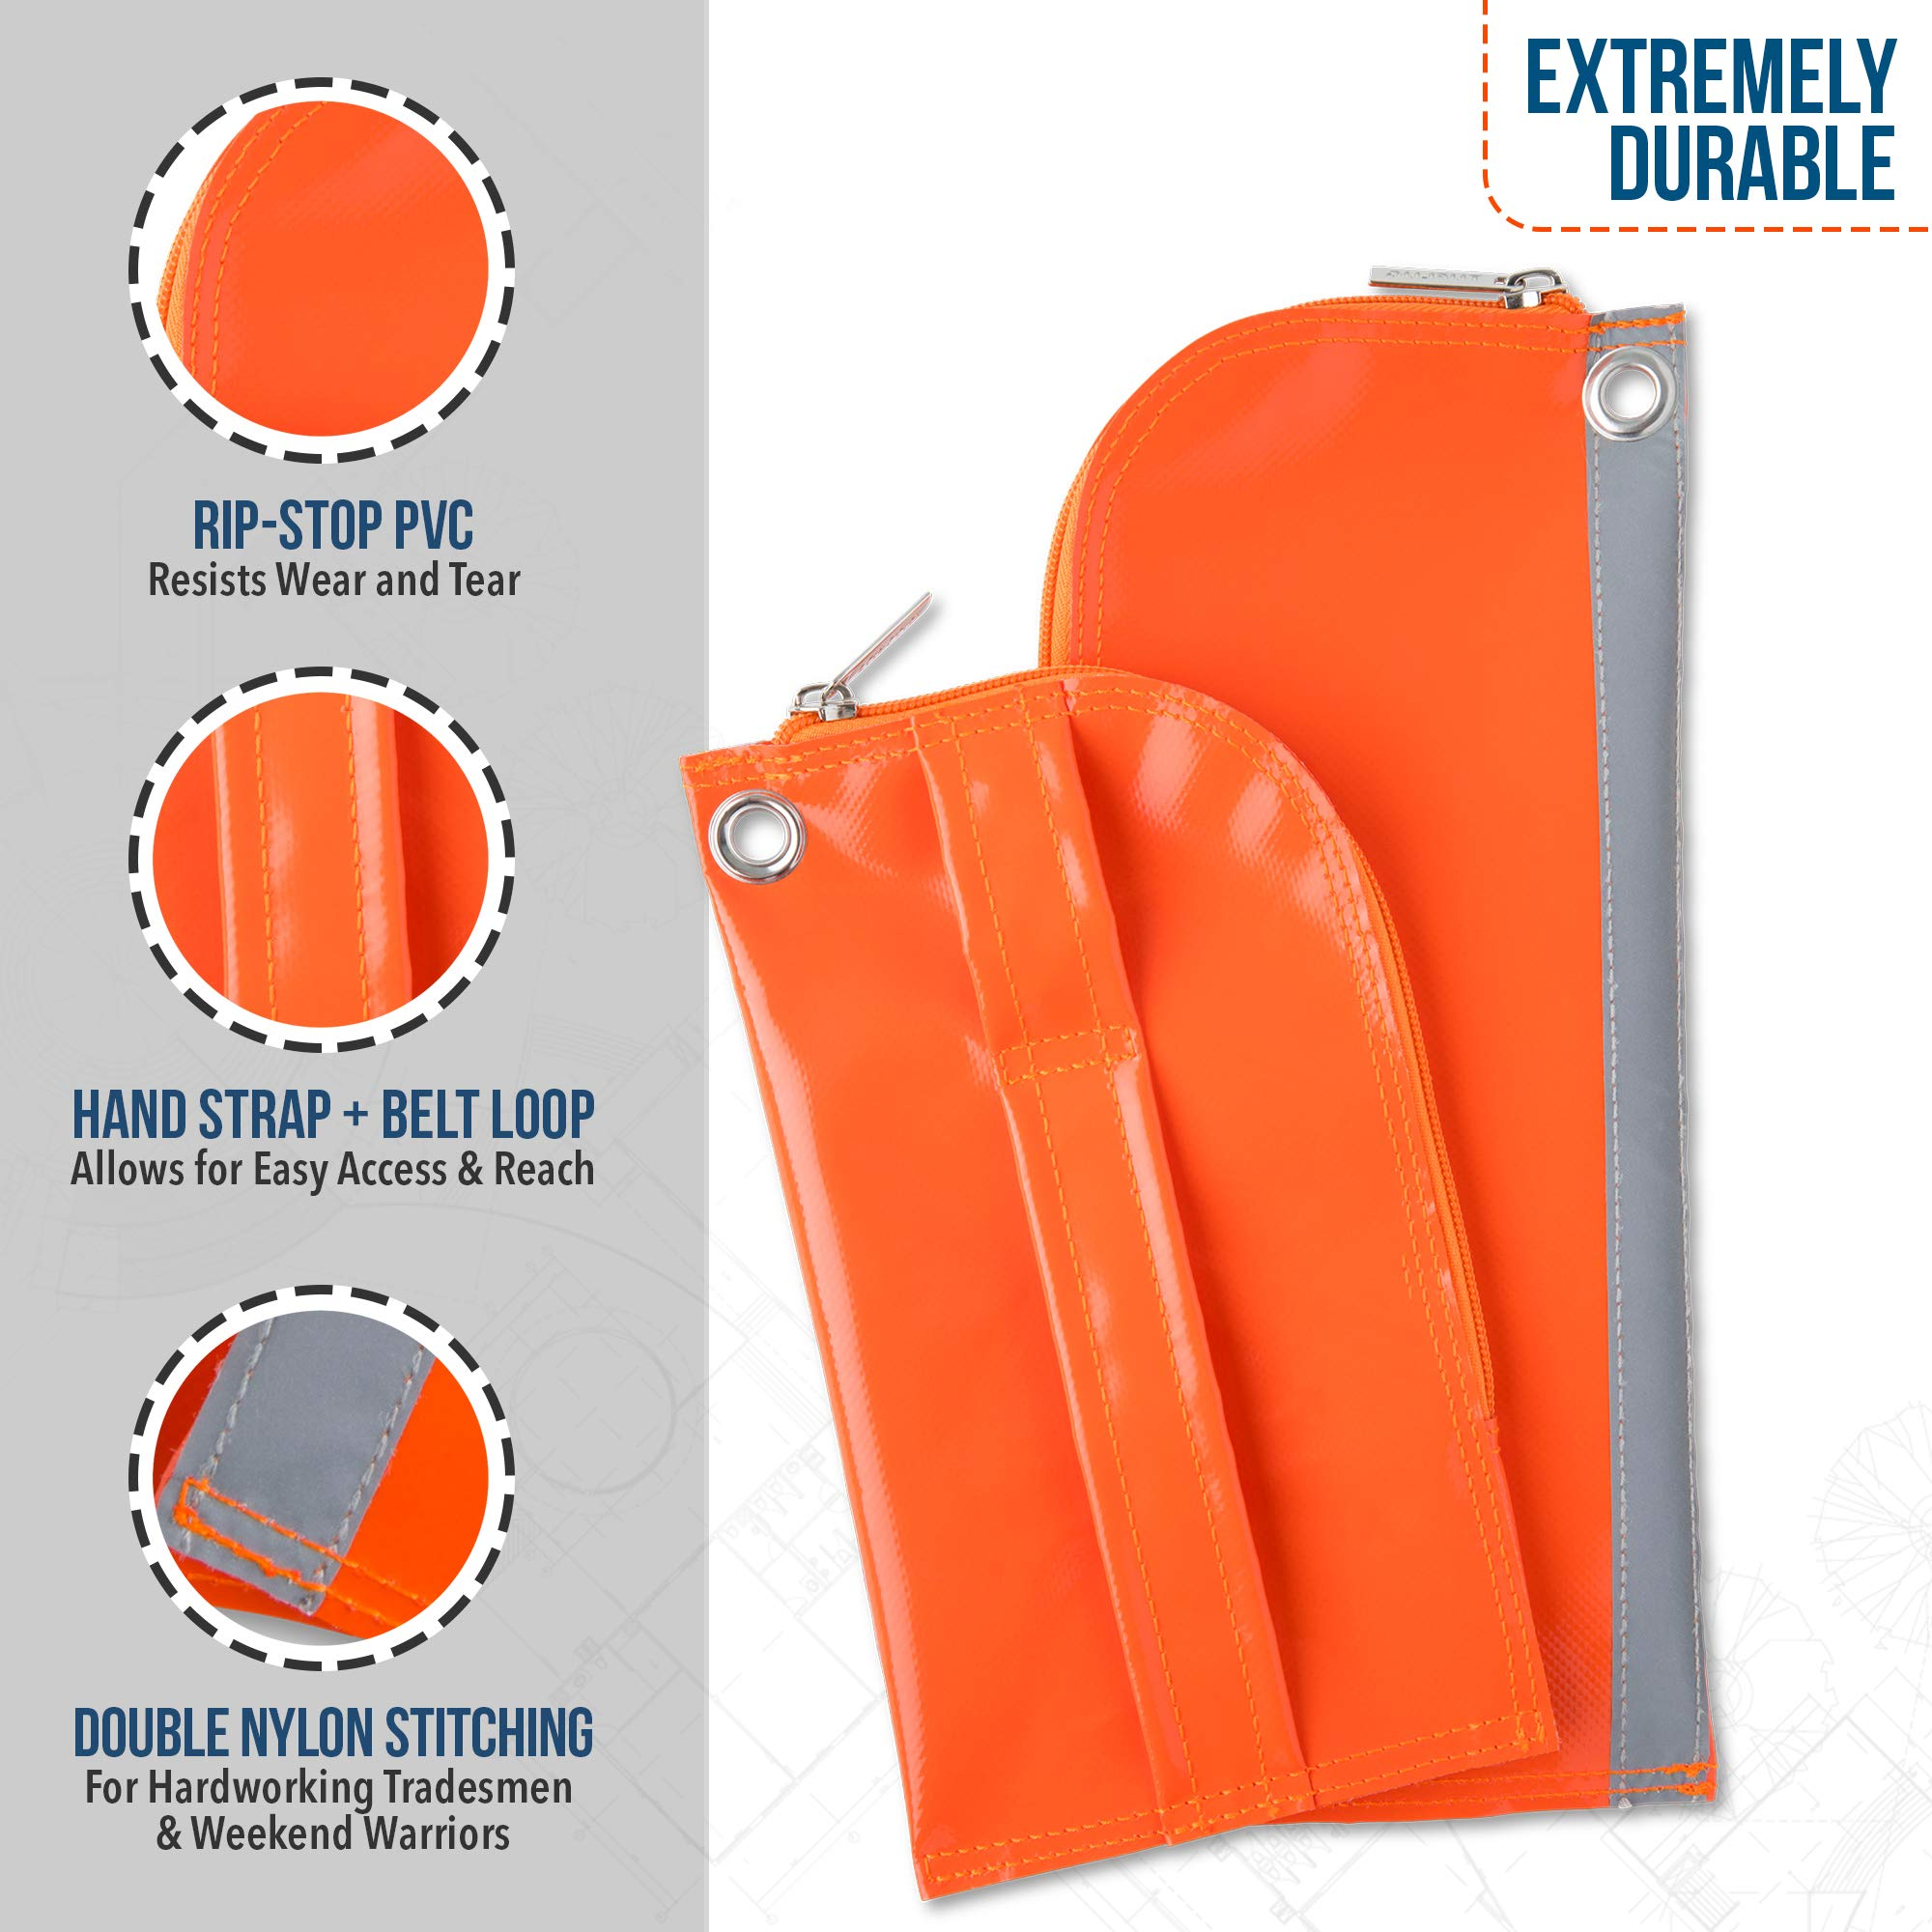 Heavy Duty Zipper Tool Pouch, 2 Pack, 12inch and 9inch - Waterproof, Lightweight, Multipurpose Utility Bag Carry Case For Small Tools - Storage Pouches, Accessories for Work Belts - PVC, Canvas by TUFLUG (Image #4)